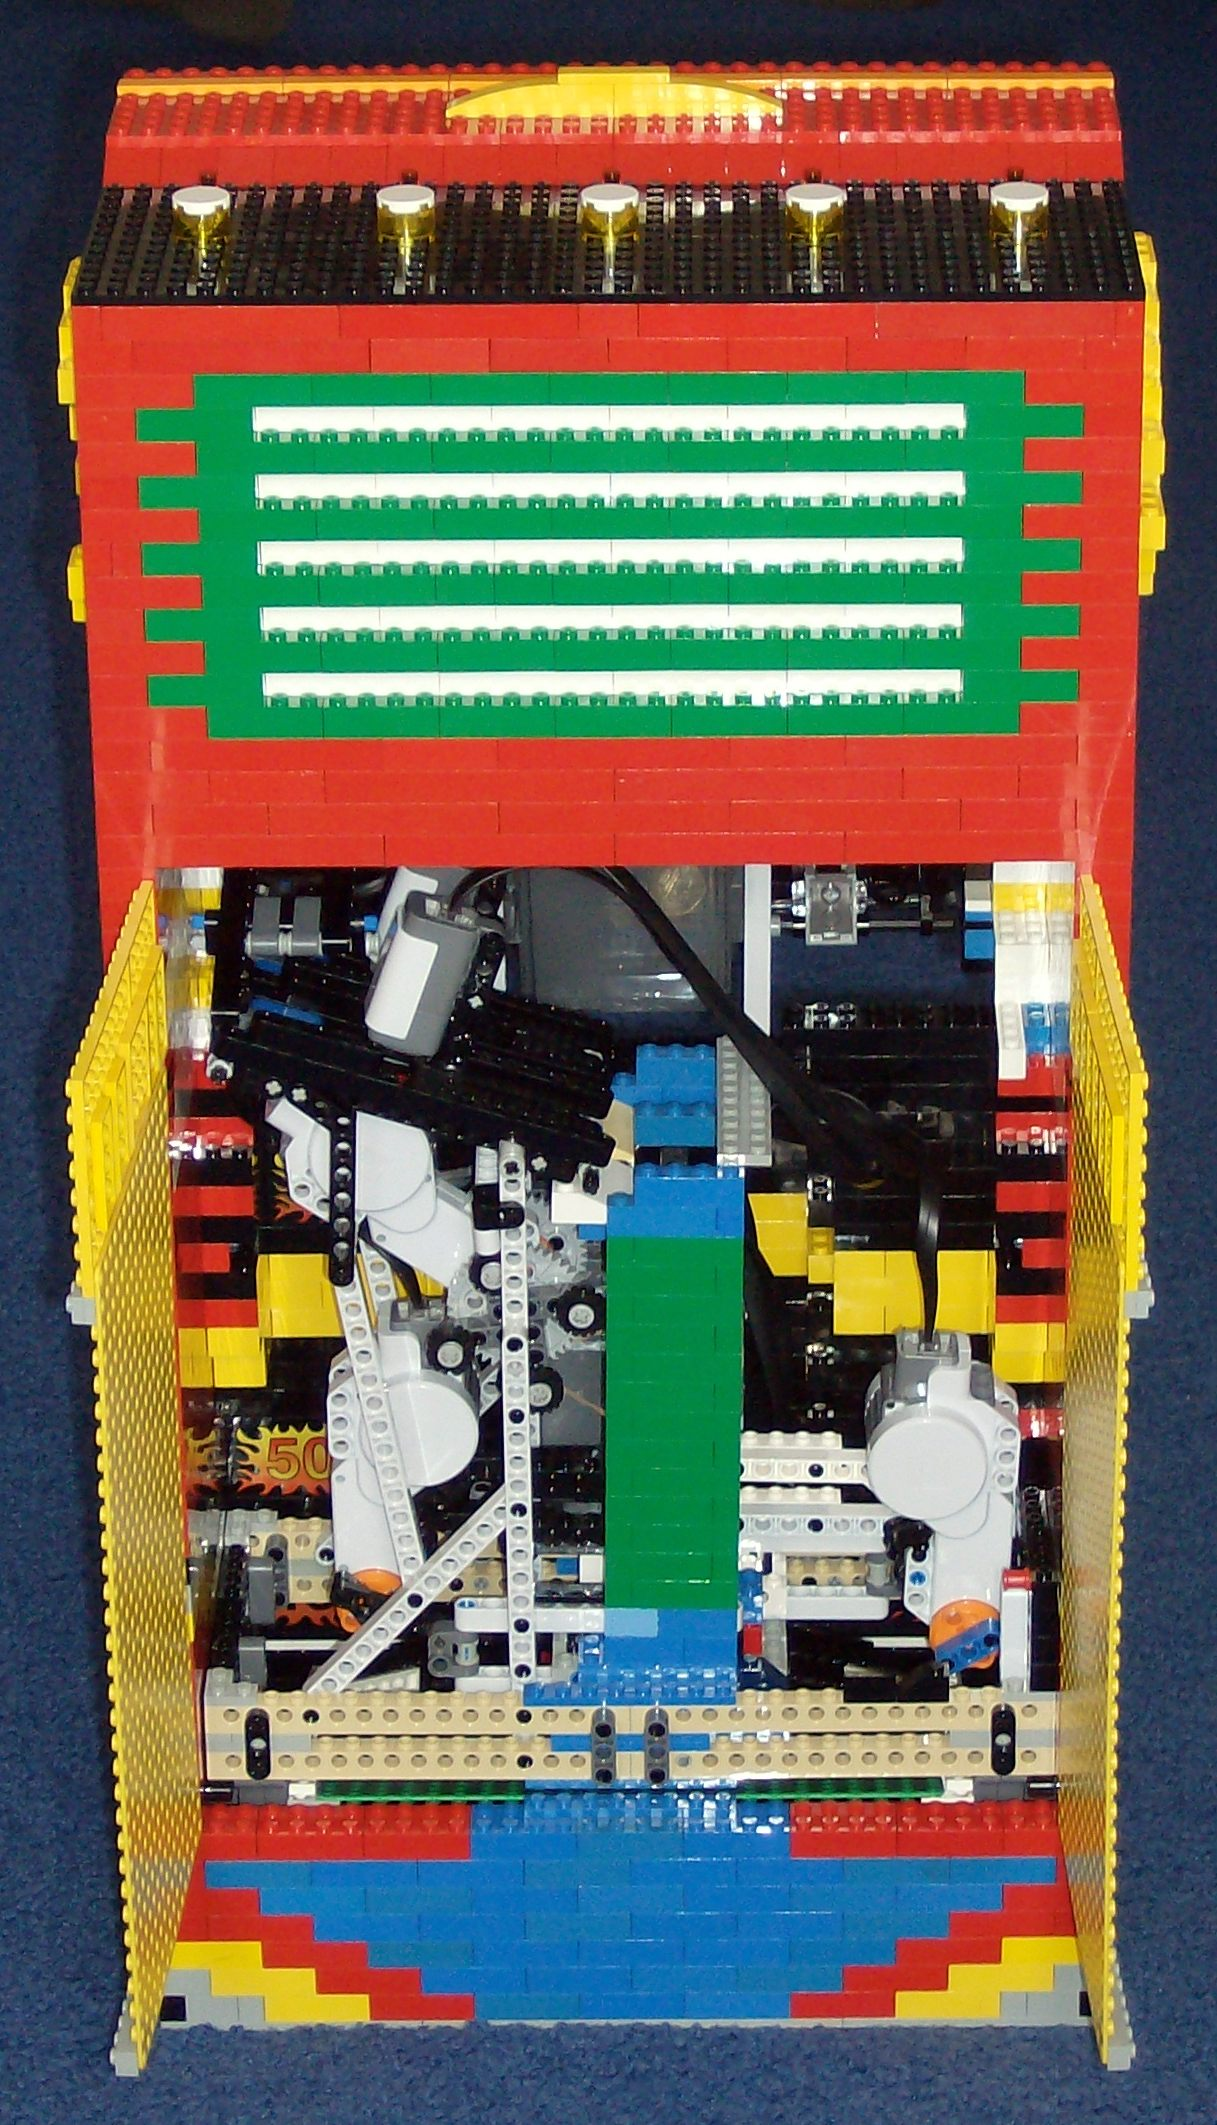 Lego Examples For All Ages Electronic Ear Rcx Module Opened Rear